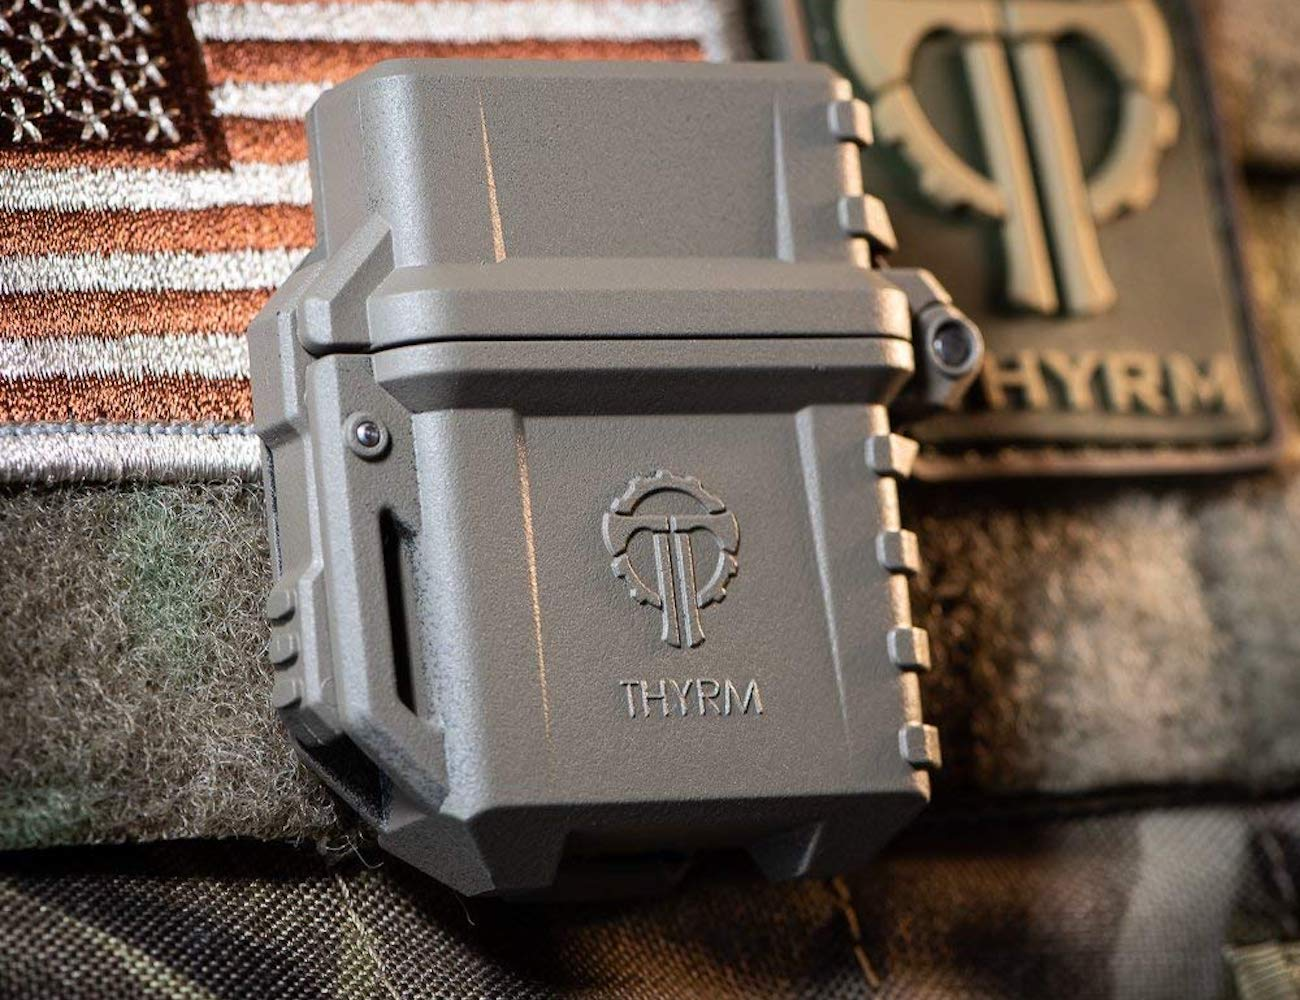 Thyrm PyroVault Protective Lighter Armor